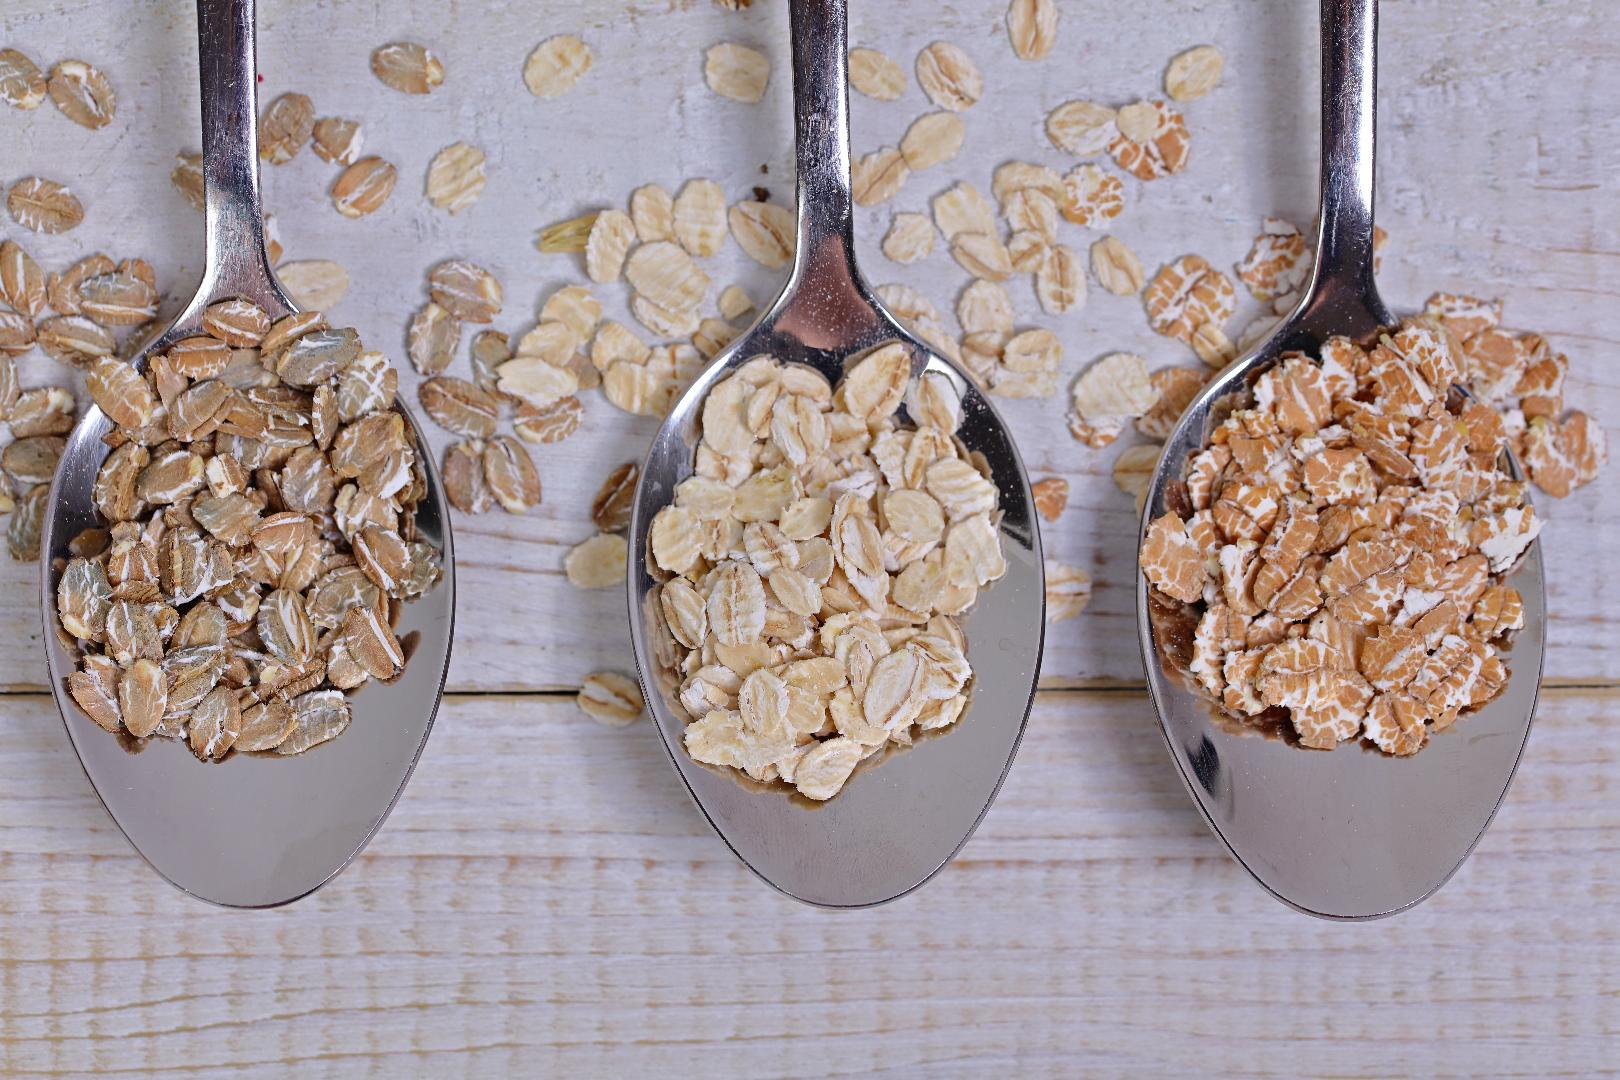 The 9 Essential Whole Grain Foods You Need in Your Diet - Cooking Light